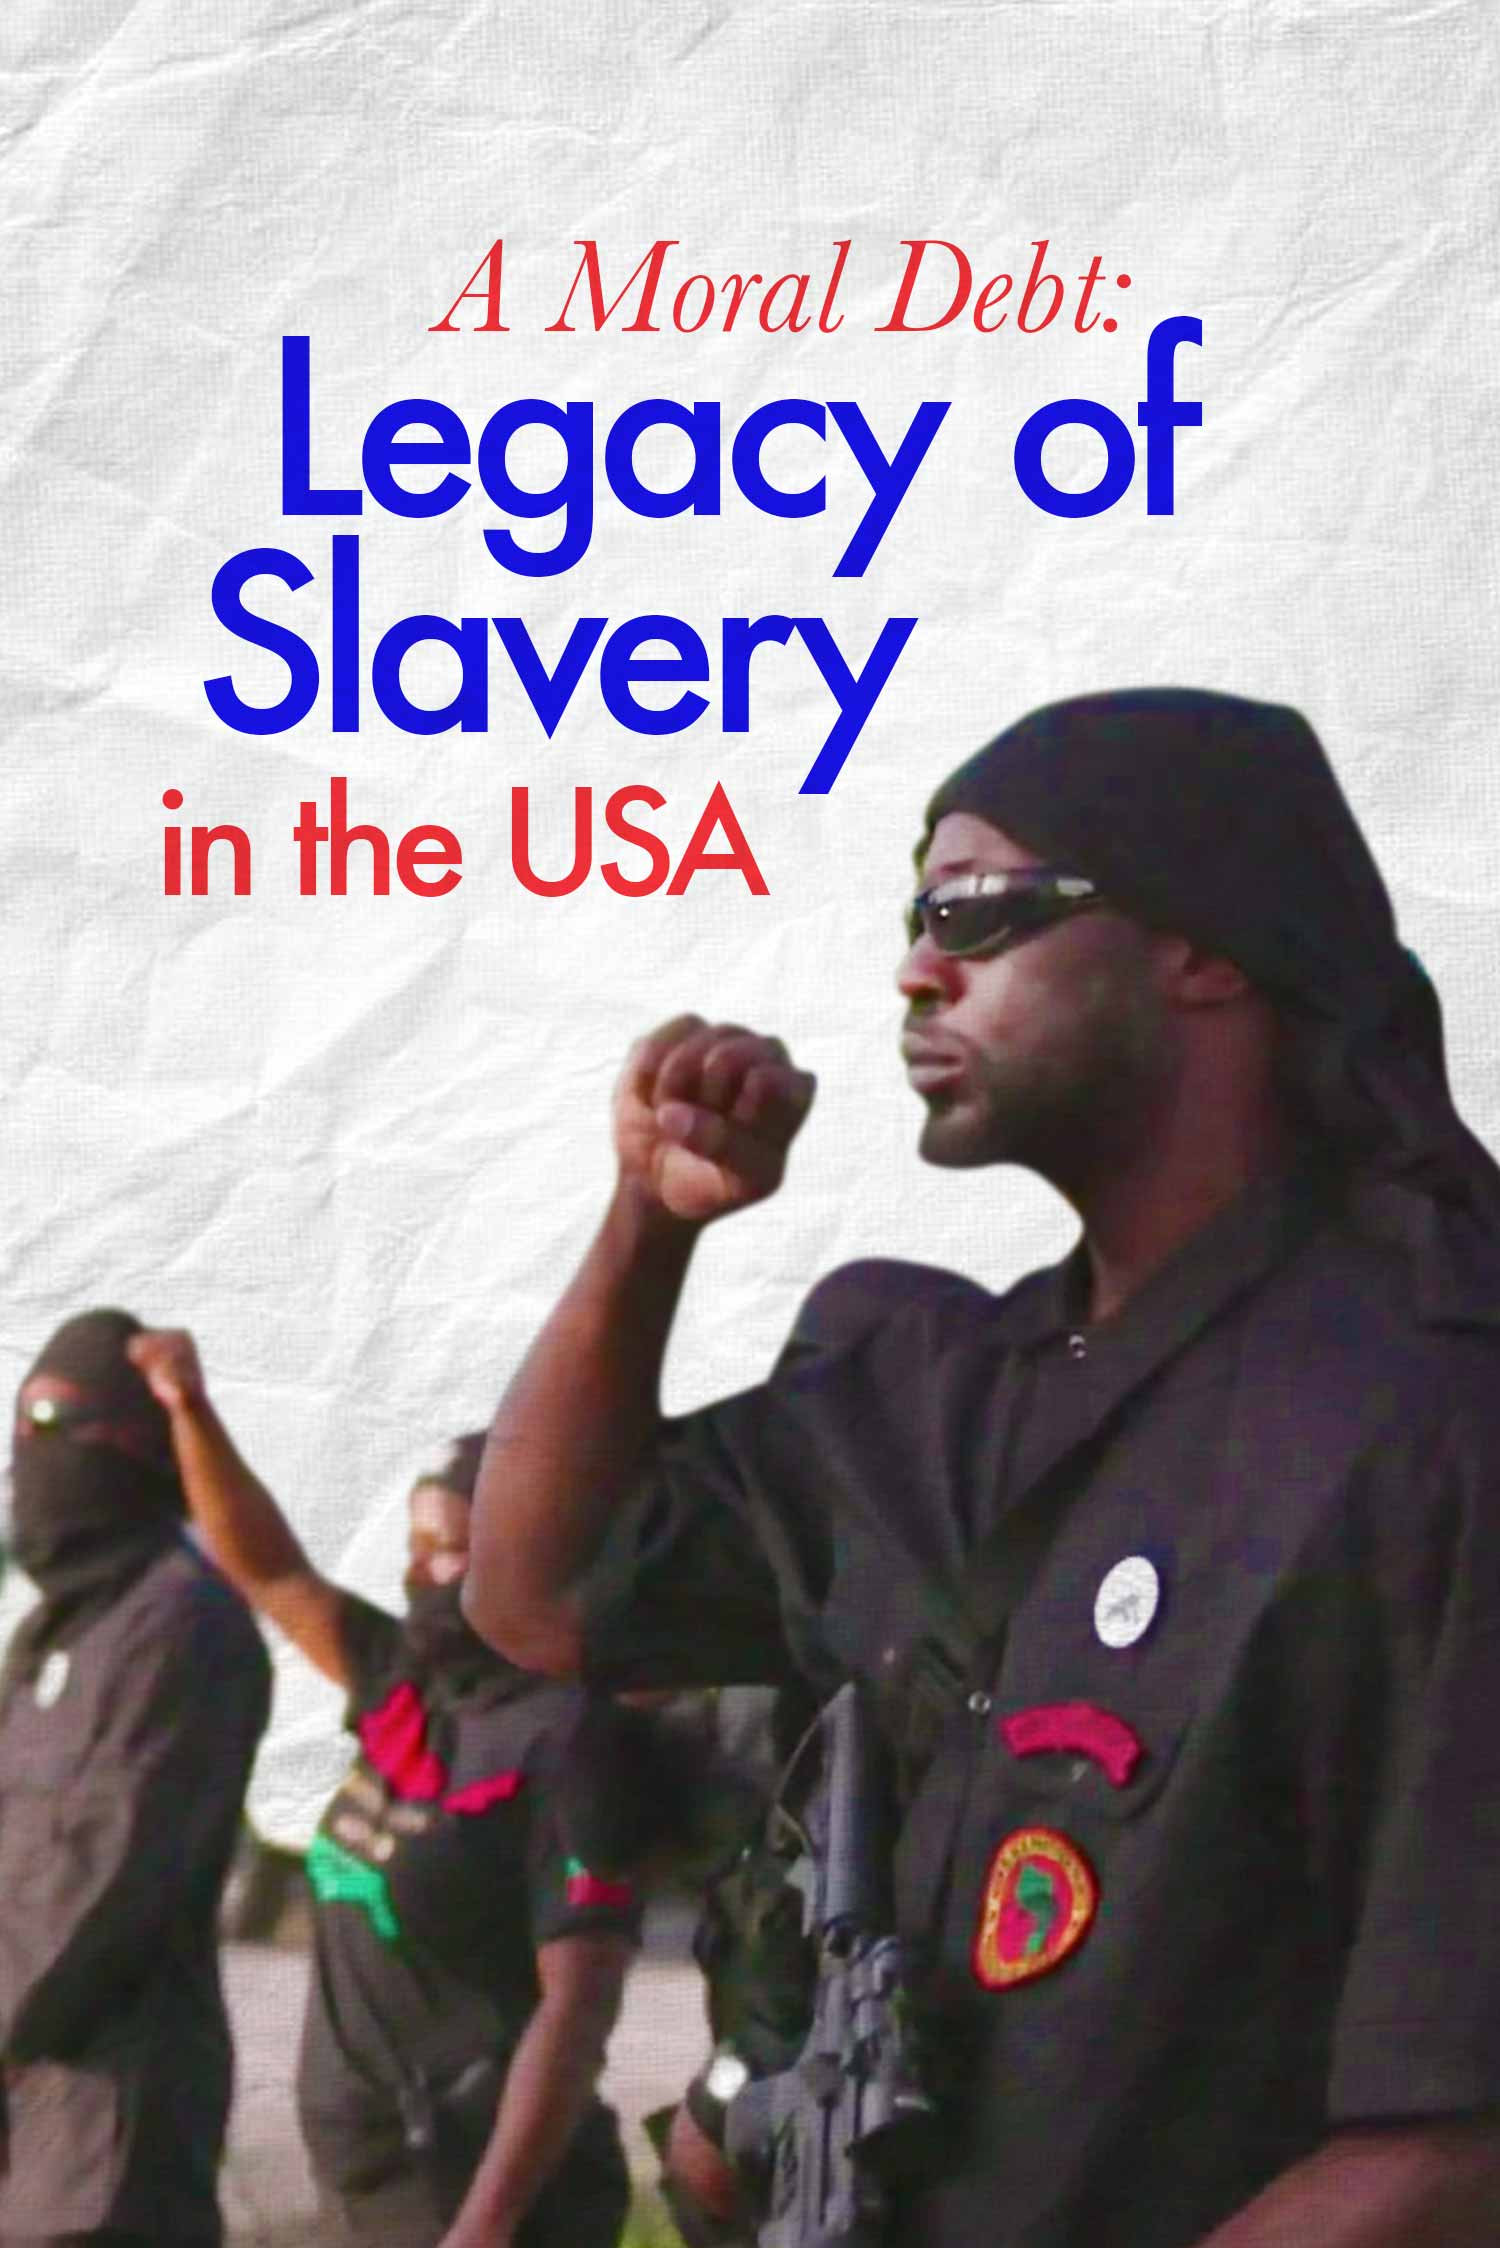 A Moral Debt: The Legacy of Slavery in the USA